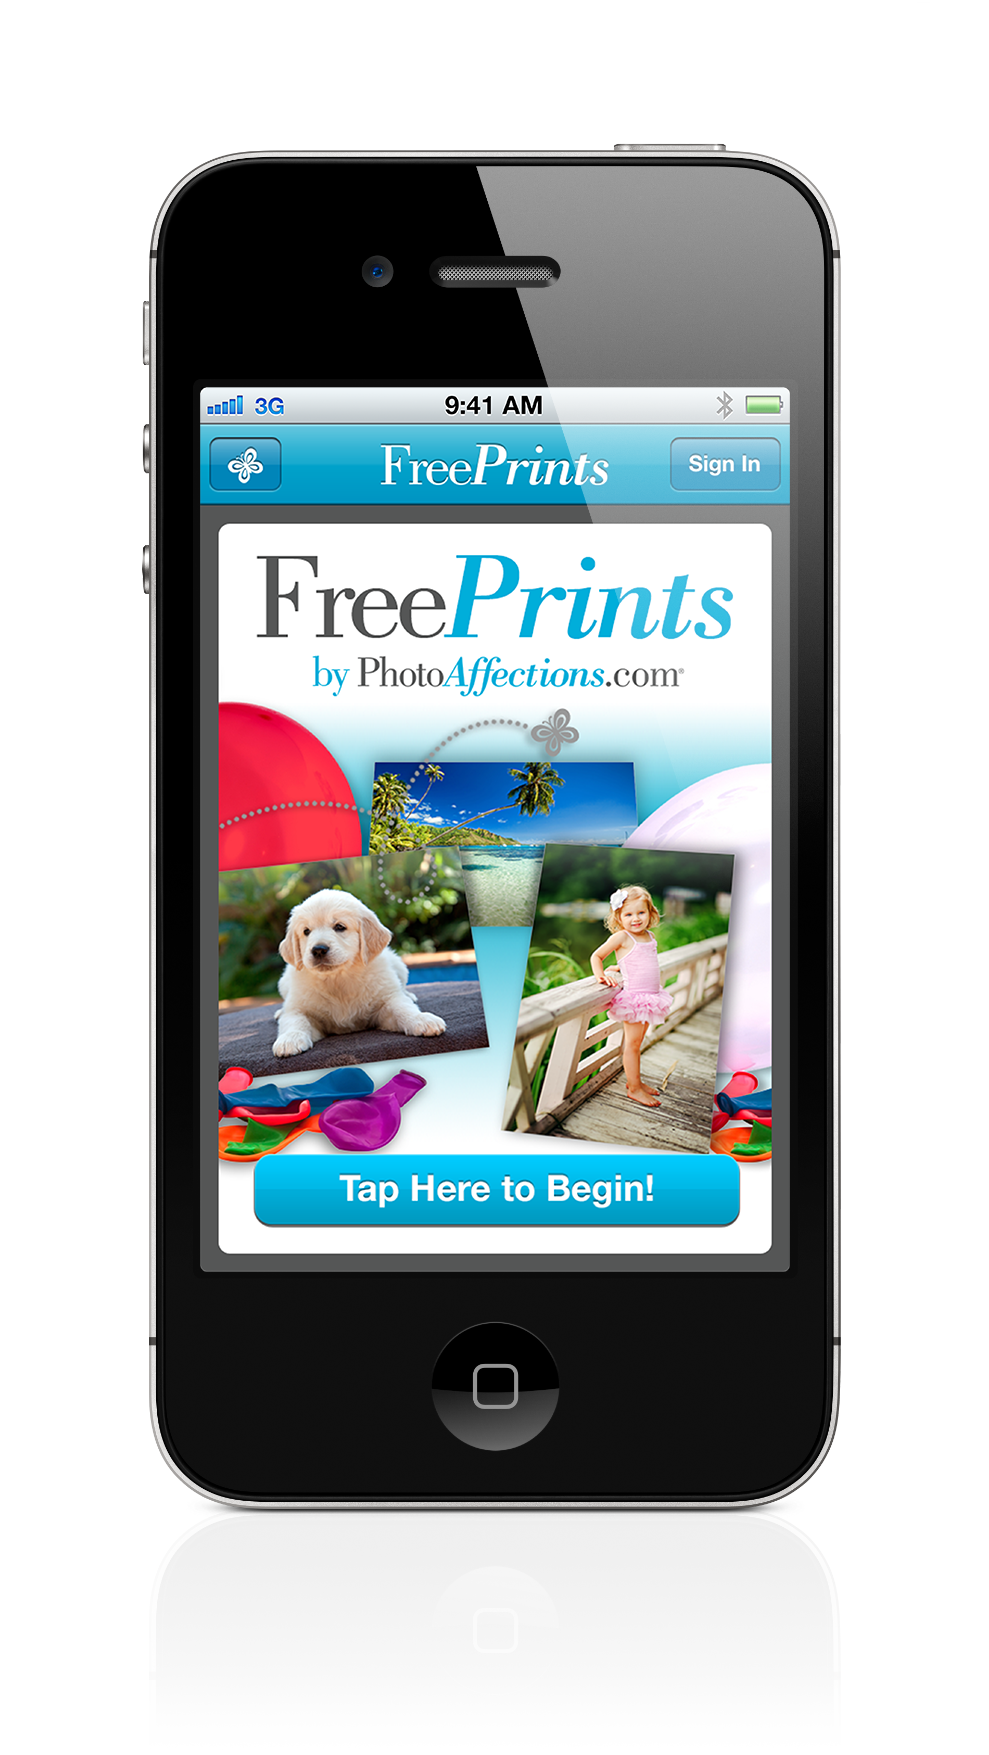 free prints by photoaffectionscom features 1000 free 46 prints a year professional quality photographic prints high resolution prints with a - 1000 Free Prints